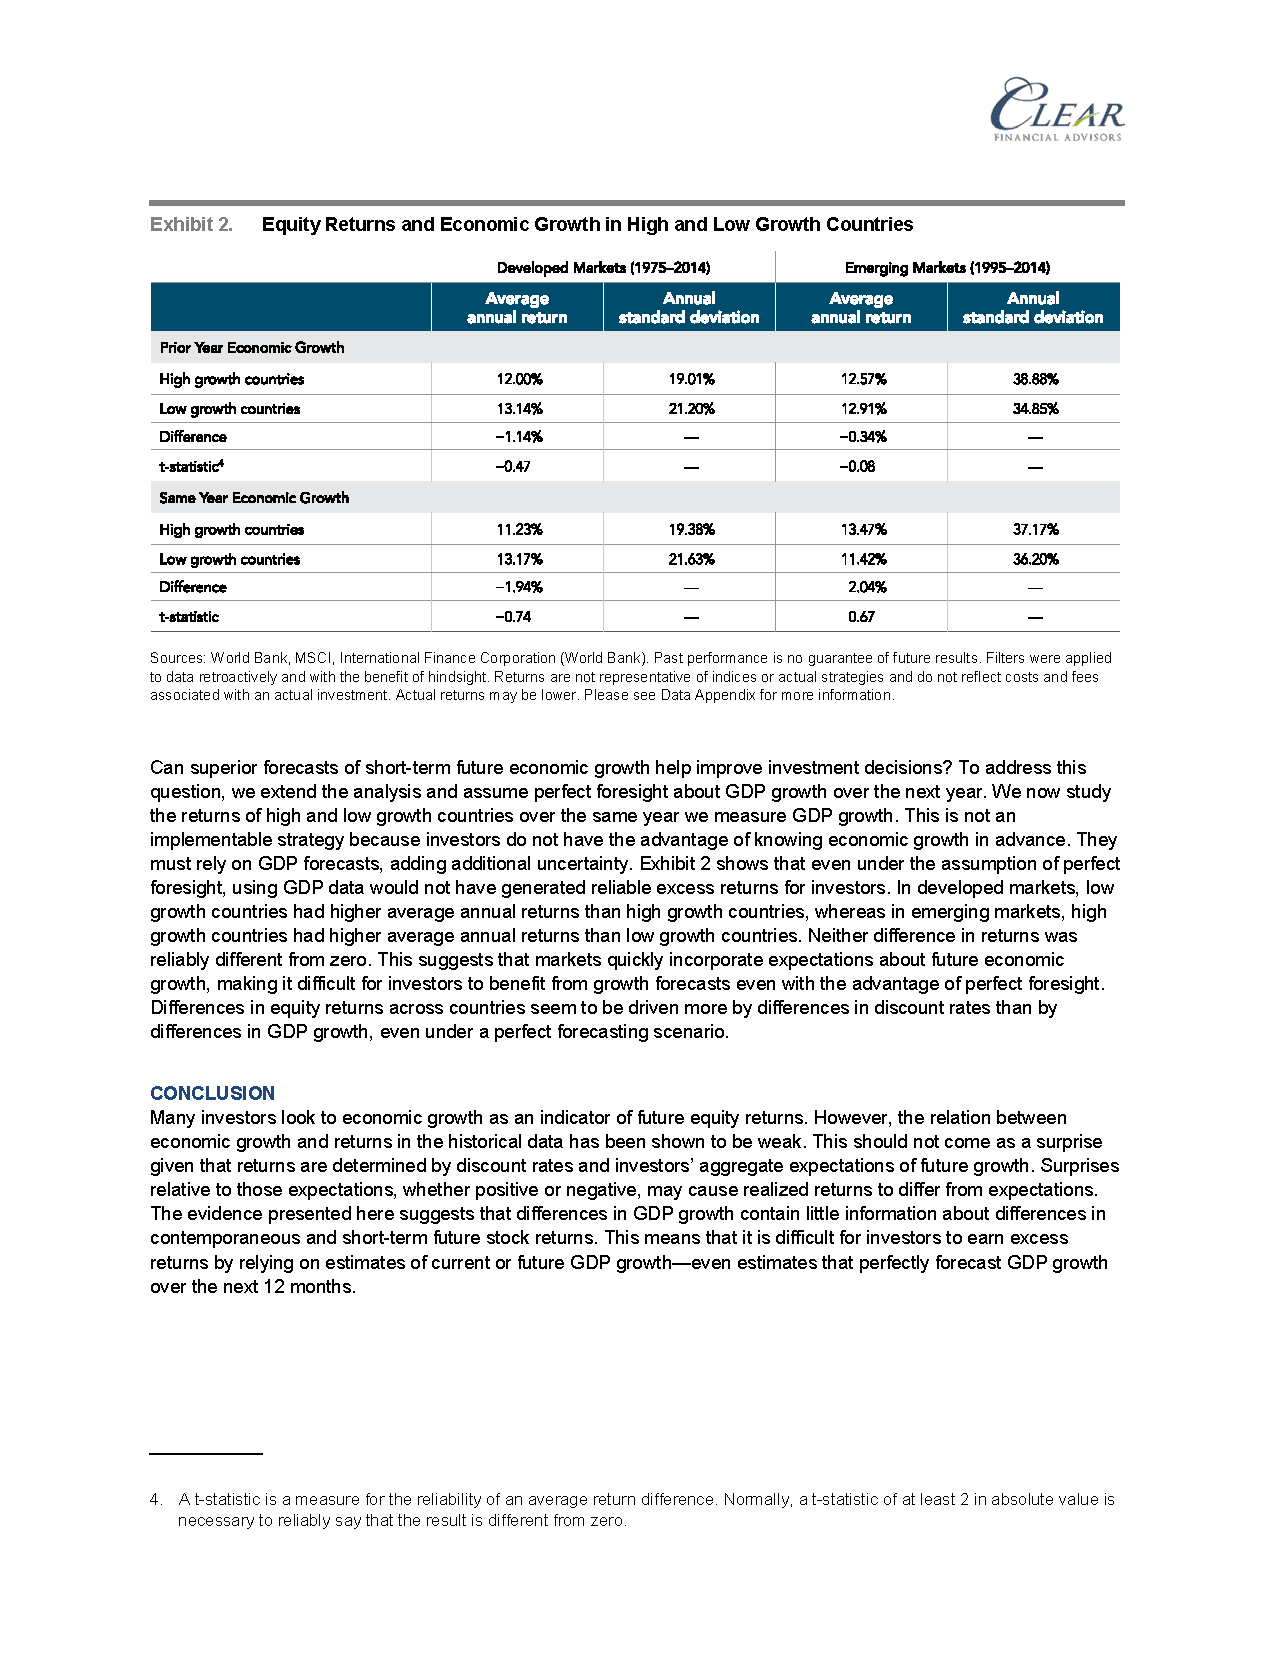 Clear Financial - Economic Growth and Equity Returns_Page_3